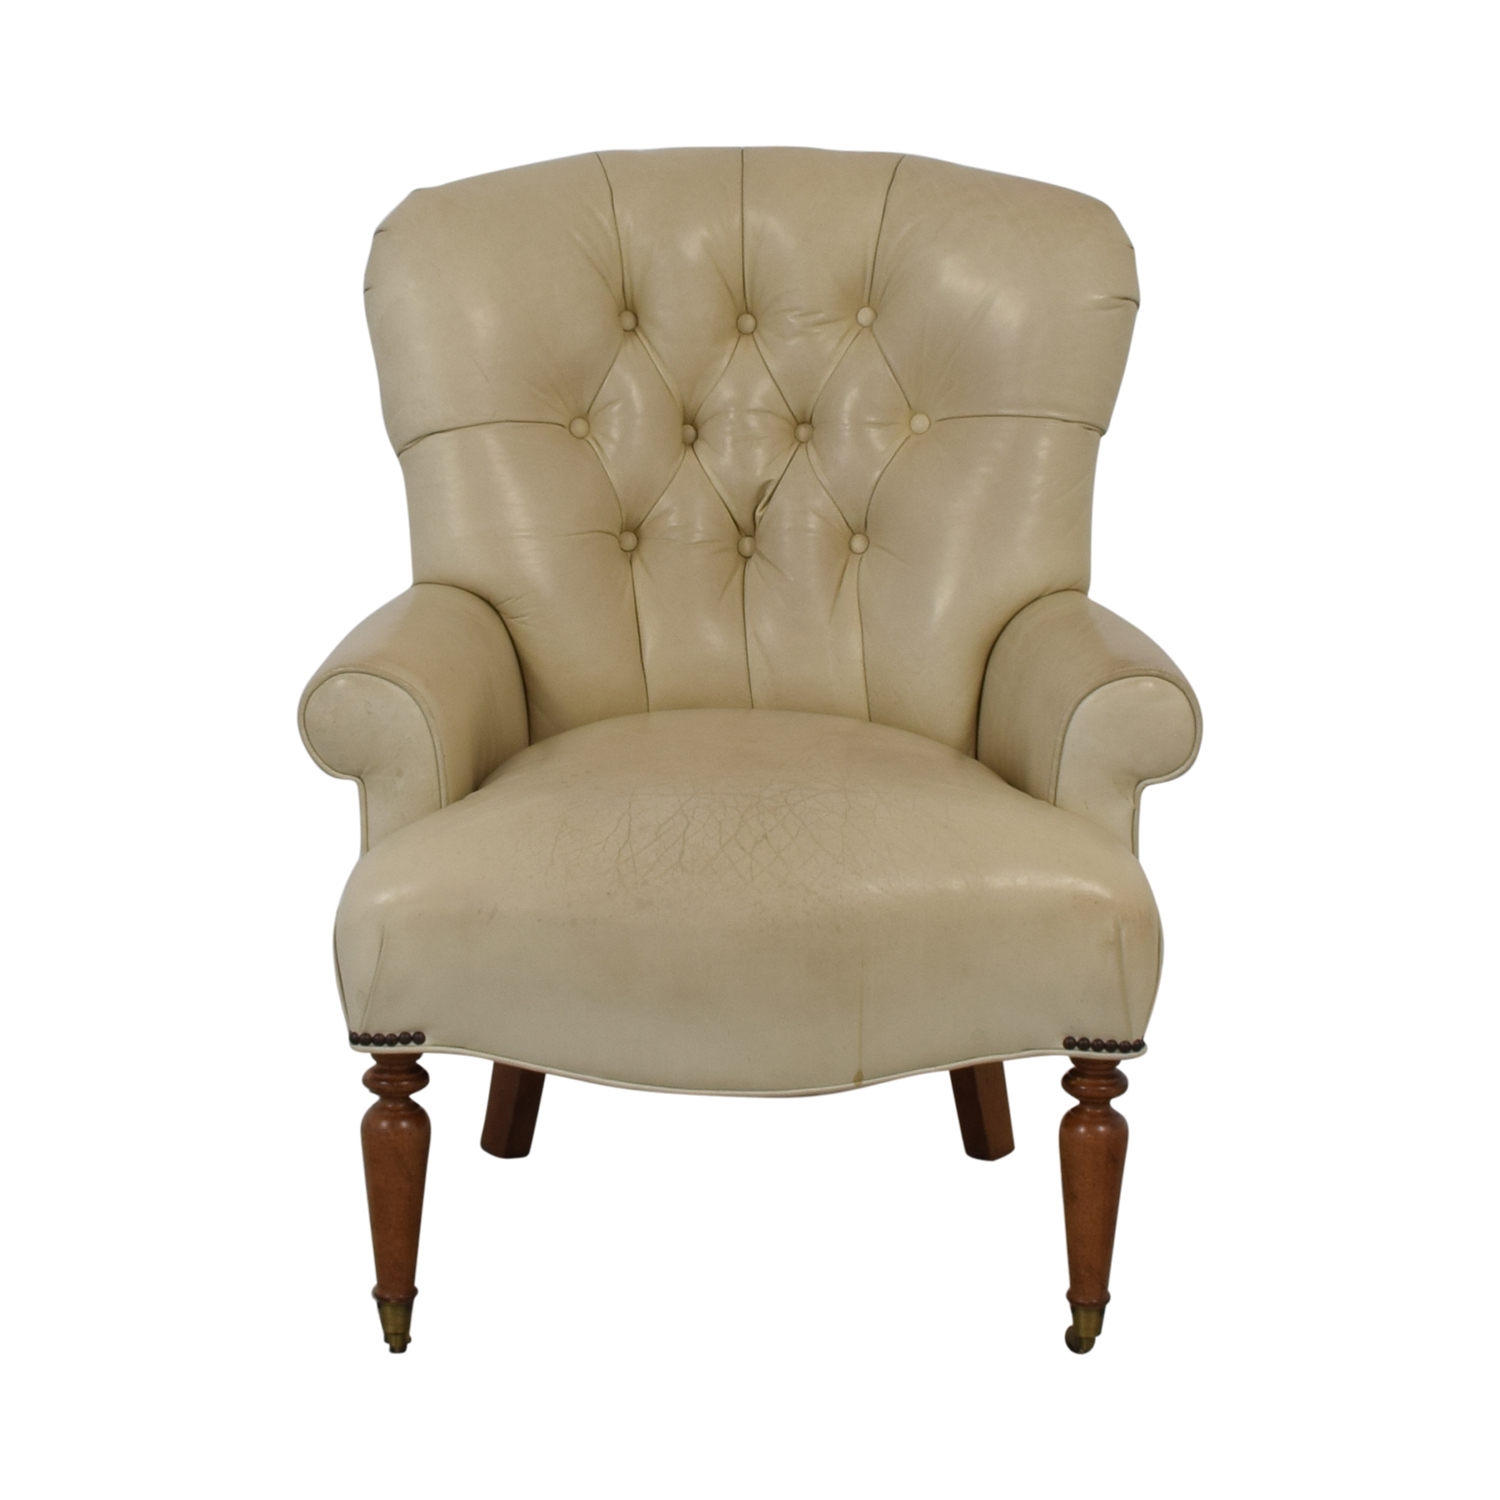 Accent Chairs.87 Off Tufted Accent Chair Chairs